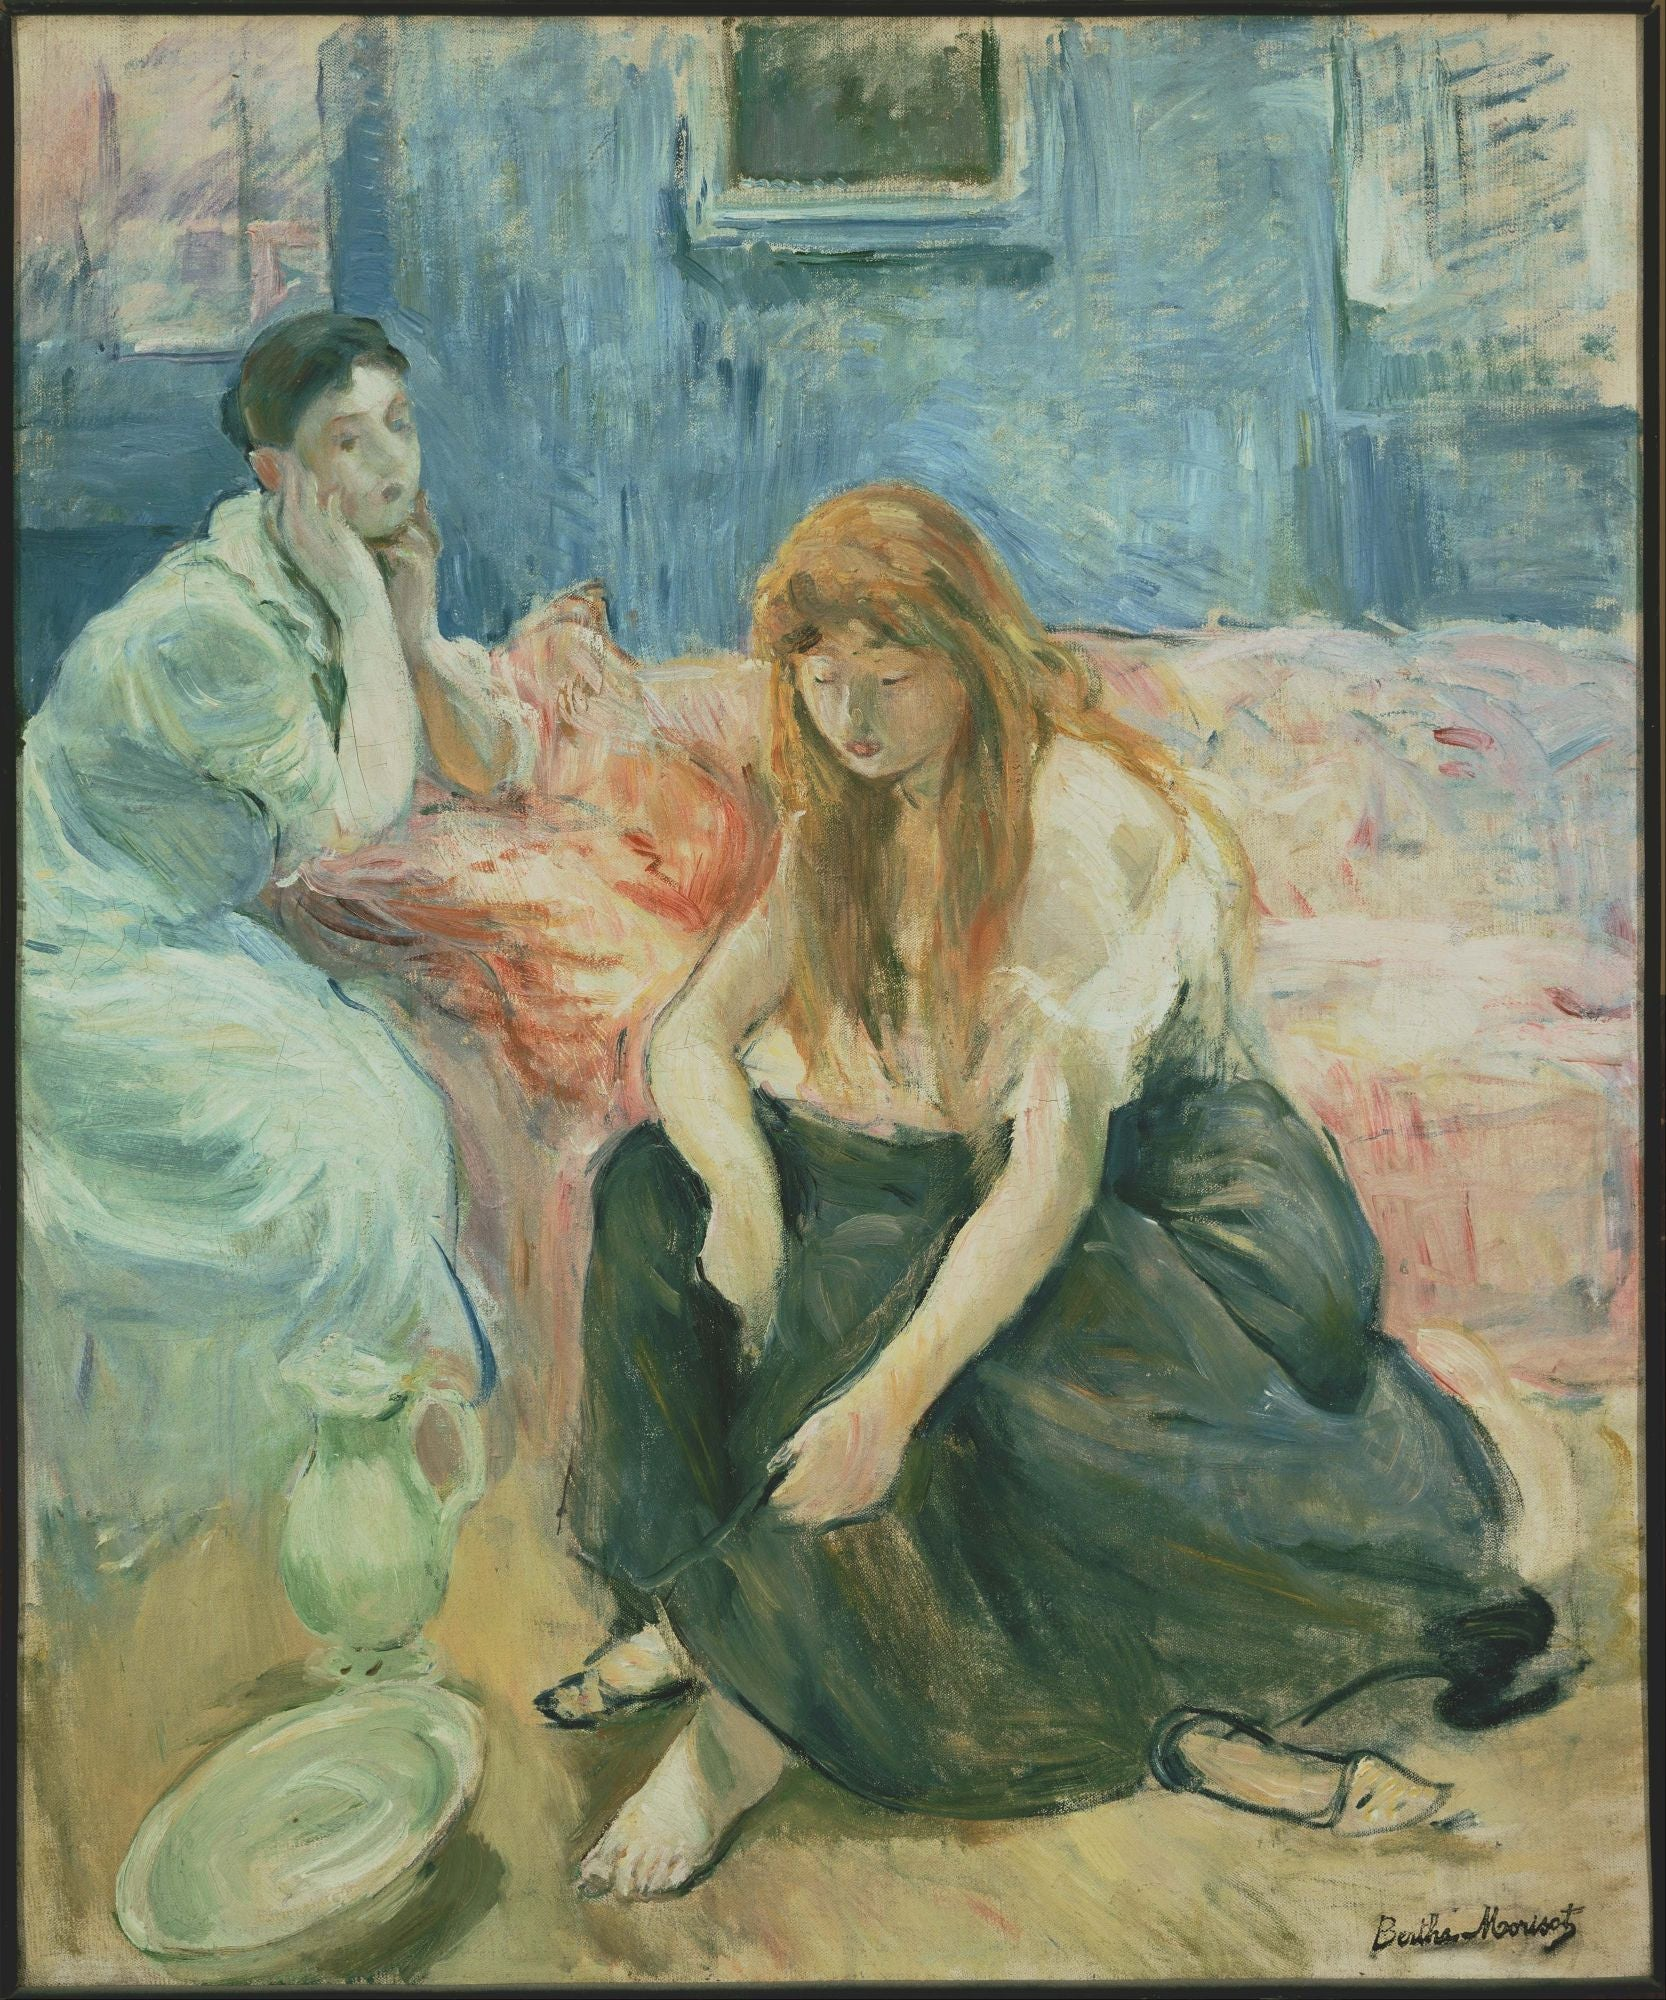 Berthe Morisot | Buy Posters, Frames, Canvas, Digital Art & Large Size Prints Of The Famous Old Master's Artworks